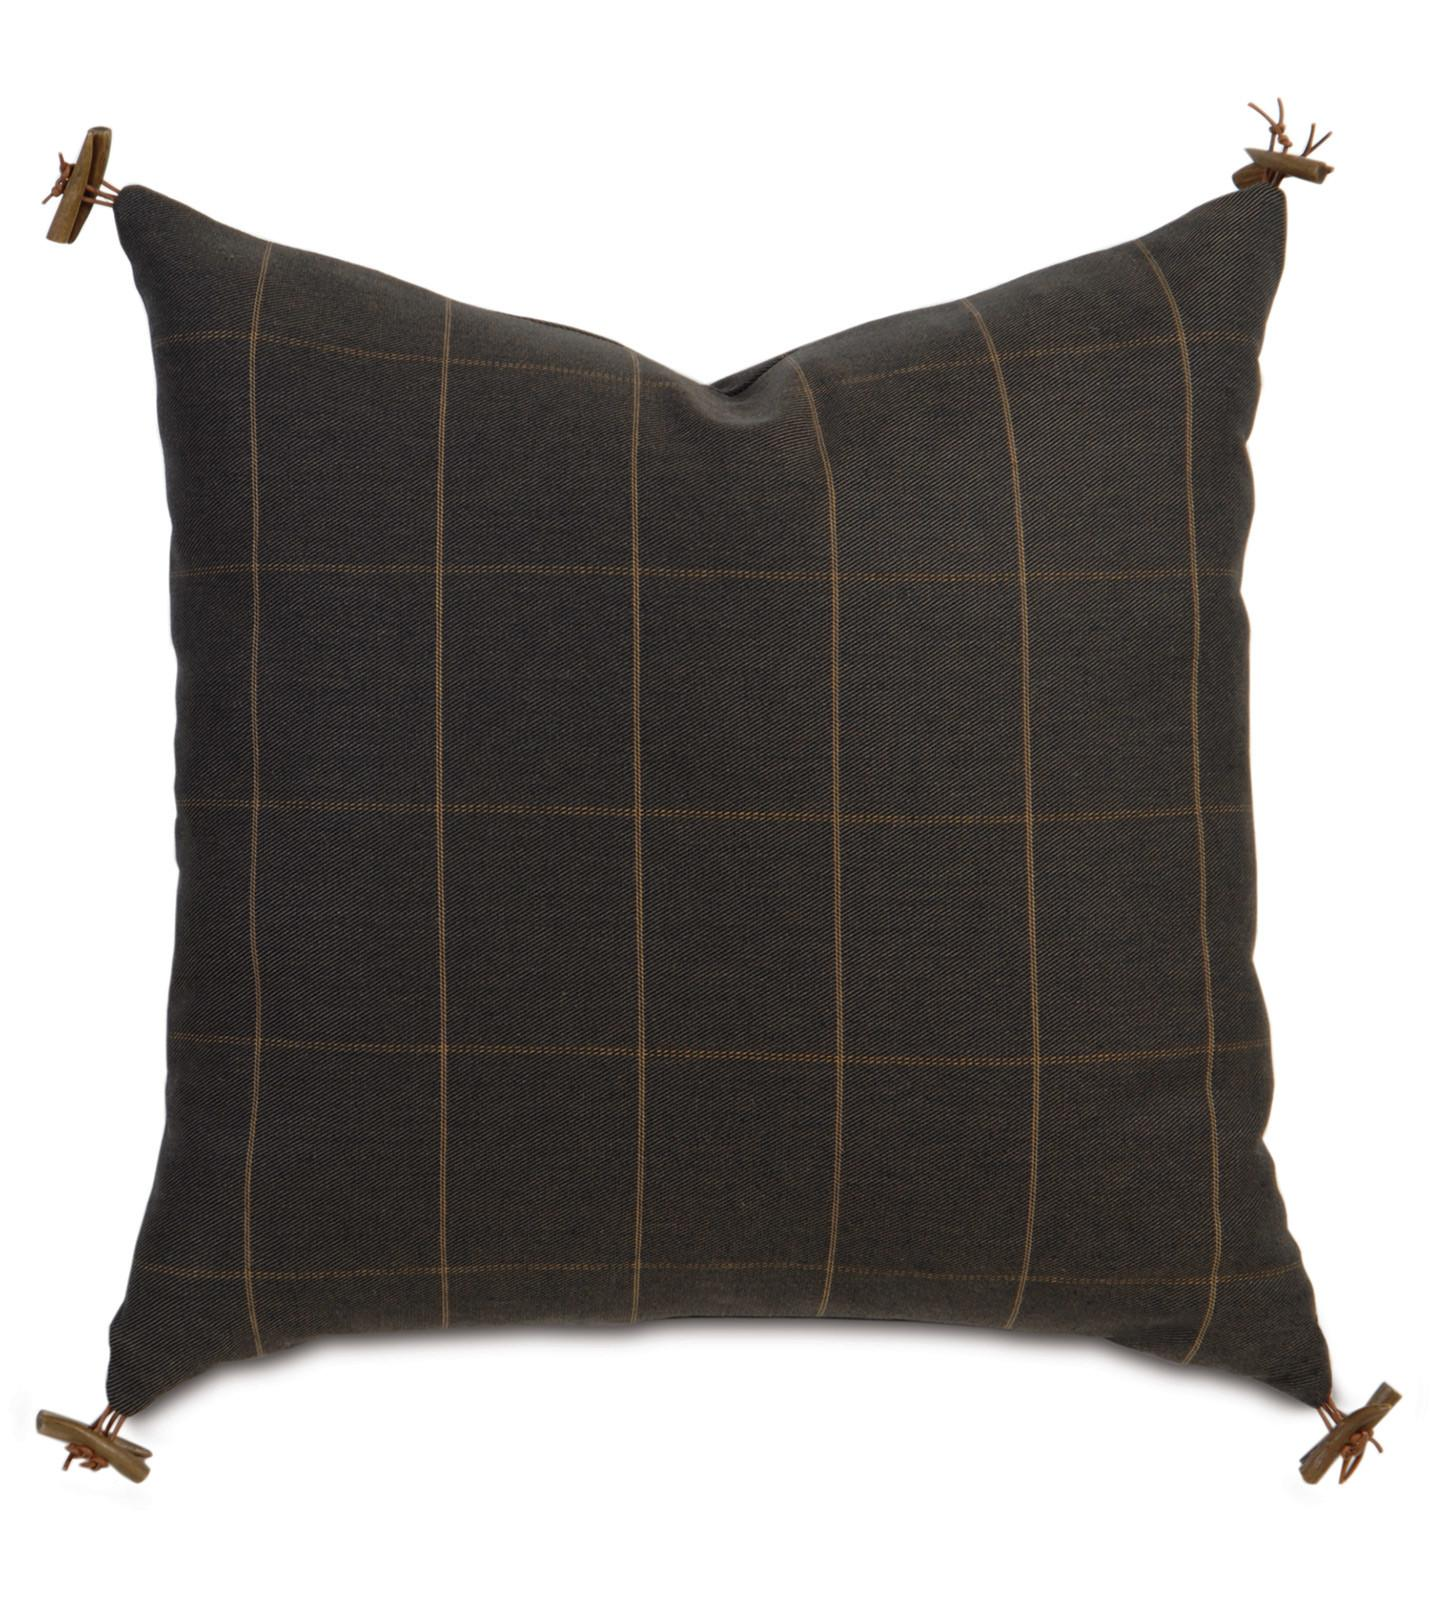 Barclay Butera Luxury Bedding Eastern Accents Rustic